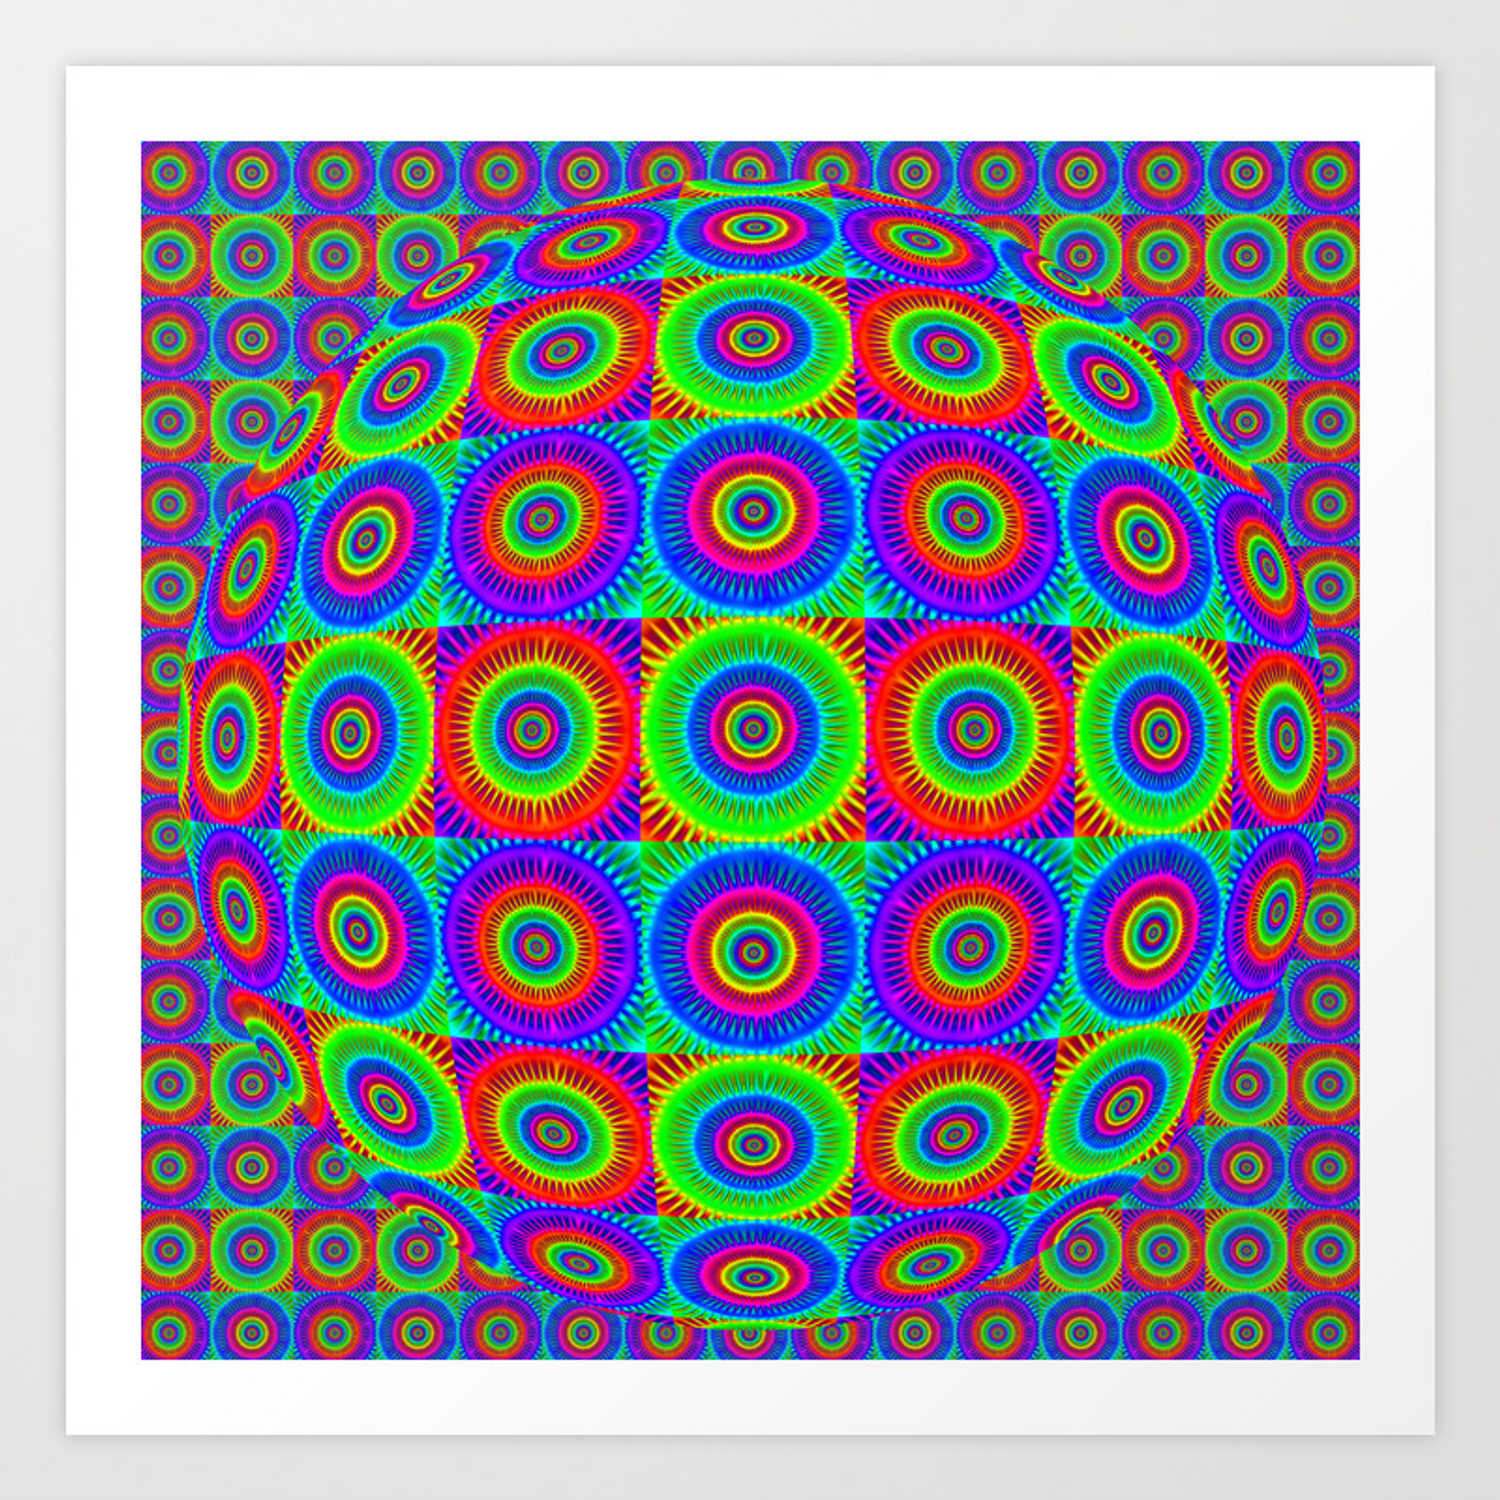 P72 Symmetrical Mirrored Digital Painting Colorful Fractal Abstract Art Postcard